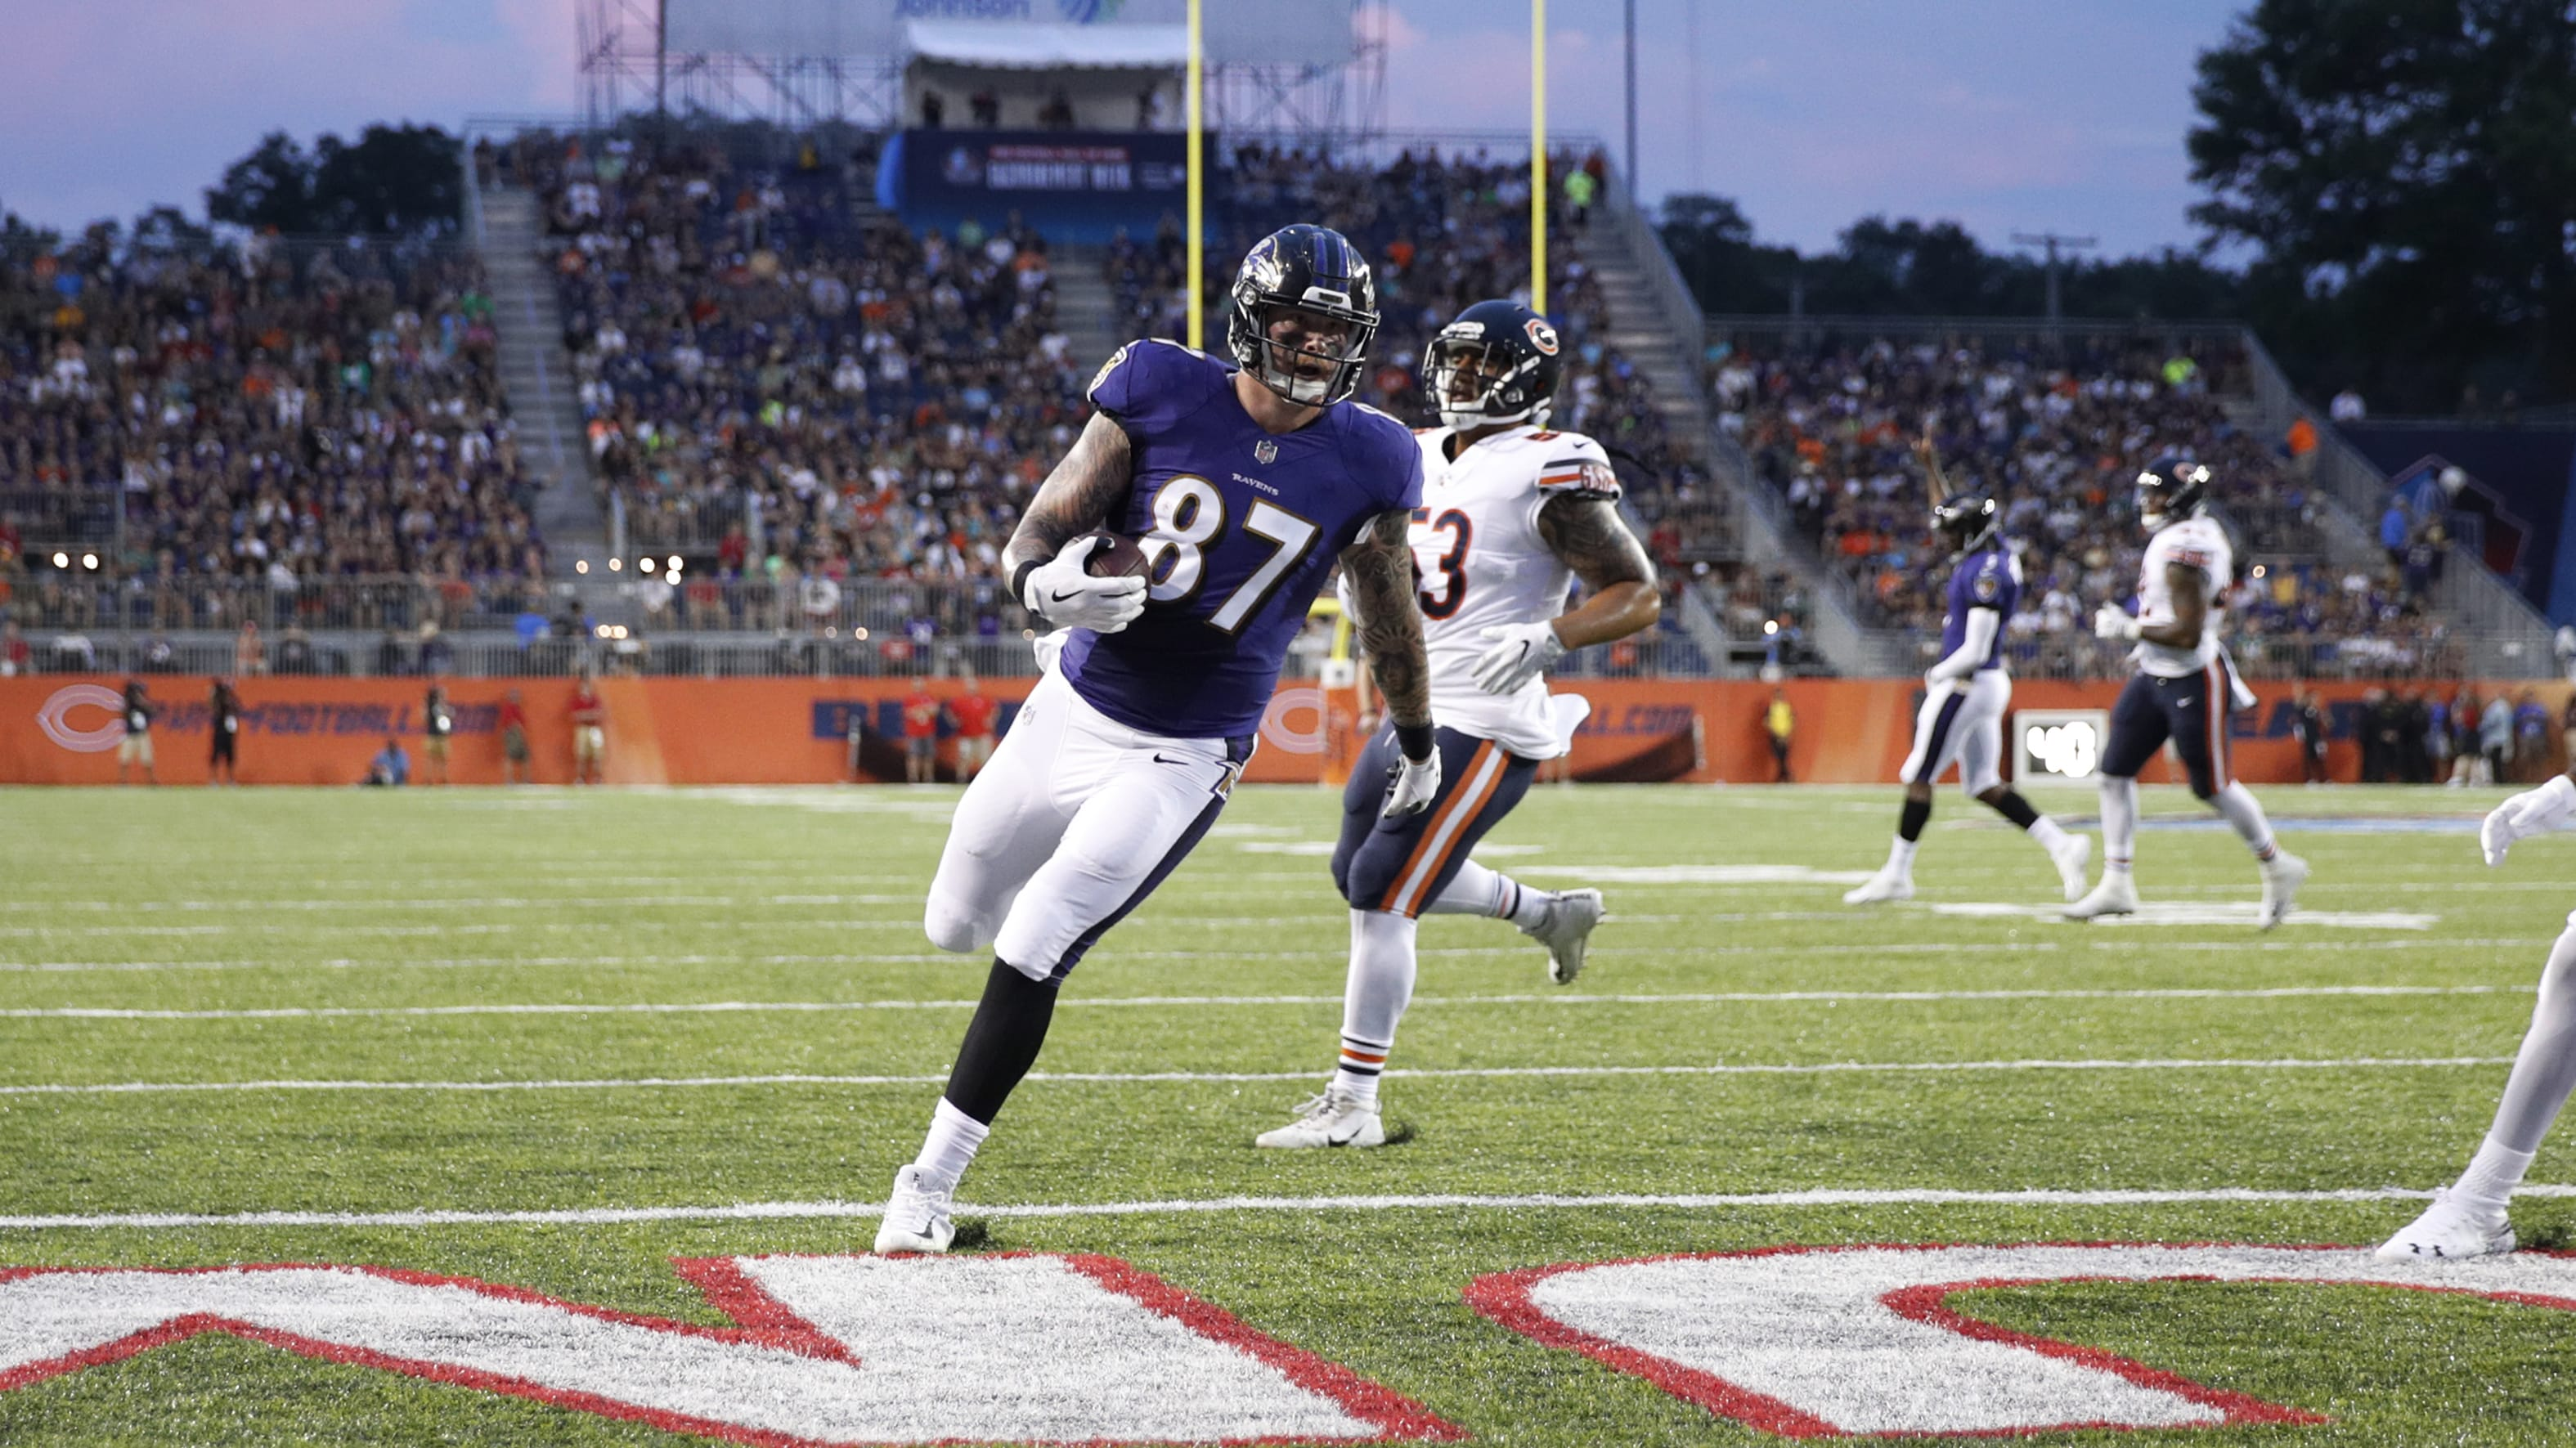 CANTON, OH - AUGUST 02: Maxx Williams #87 of the Baltimore Ravens runs into the end zone with a five-yard touchdown reception in the first quarter of the Hall of Fame Game against the Chicago Bears at Tom Benson Hall of Fame Stadium on August 2, 2018 in Canton, Ohio. (Photo by Joe Robbins/Getty Images)